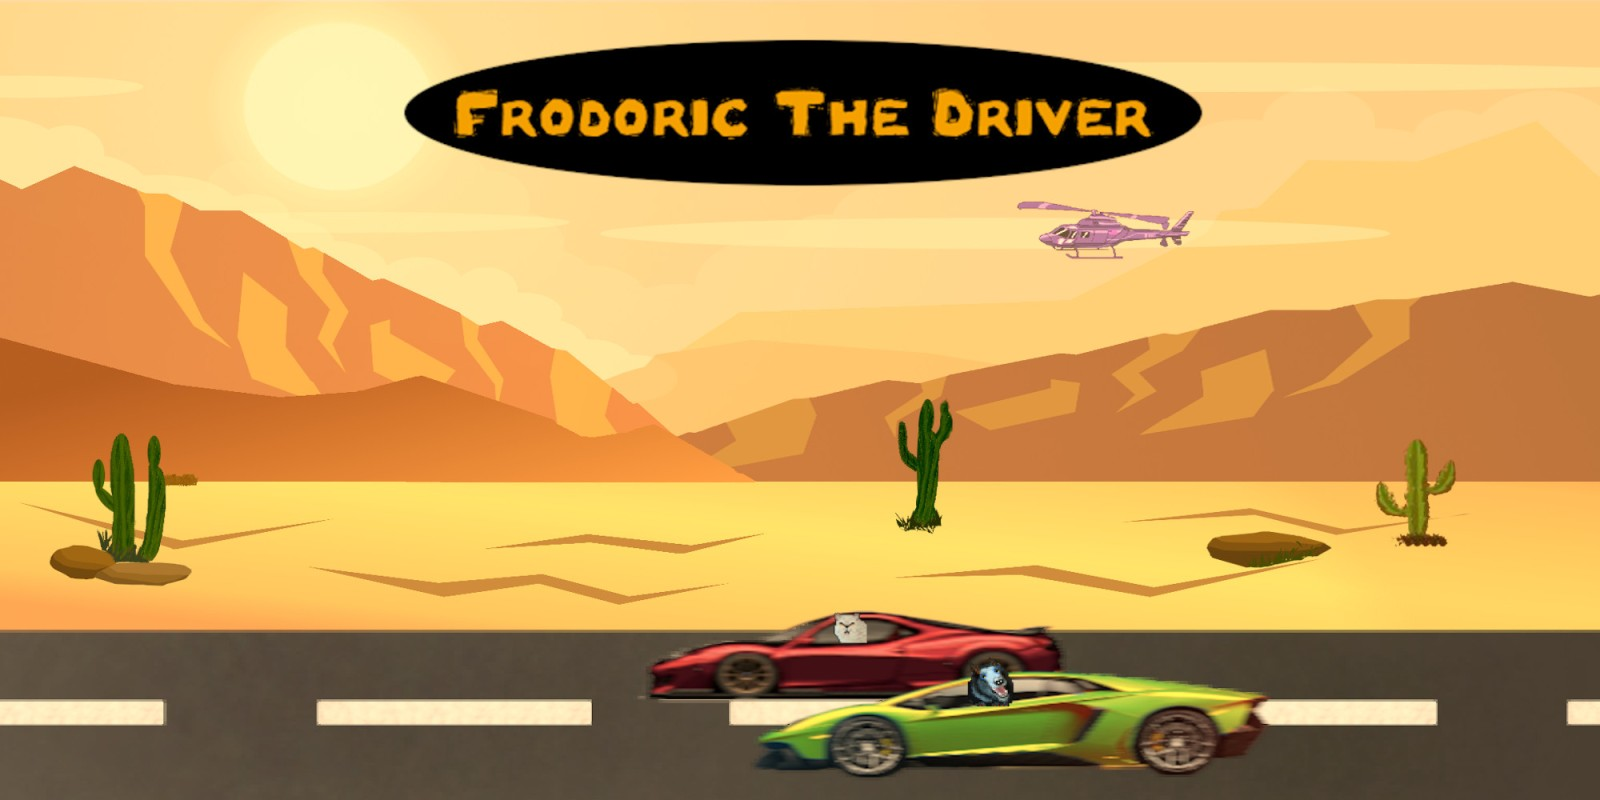 Frodoric The Driver